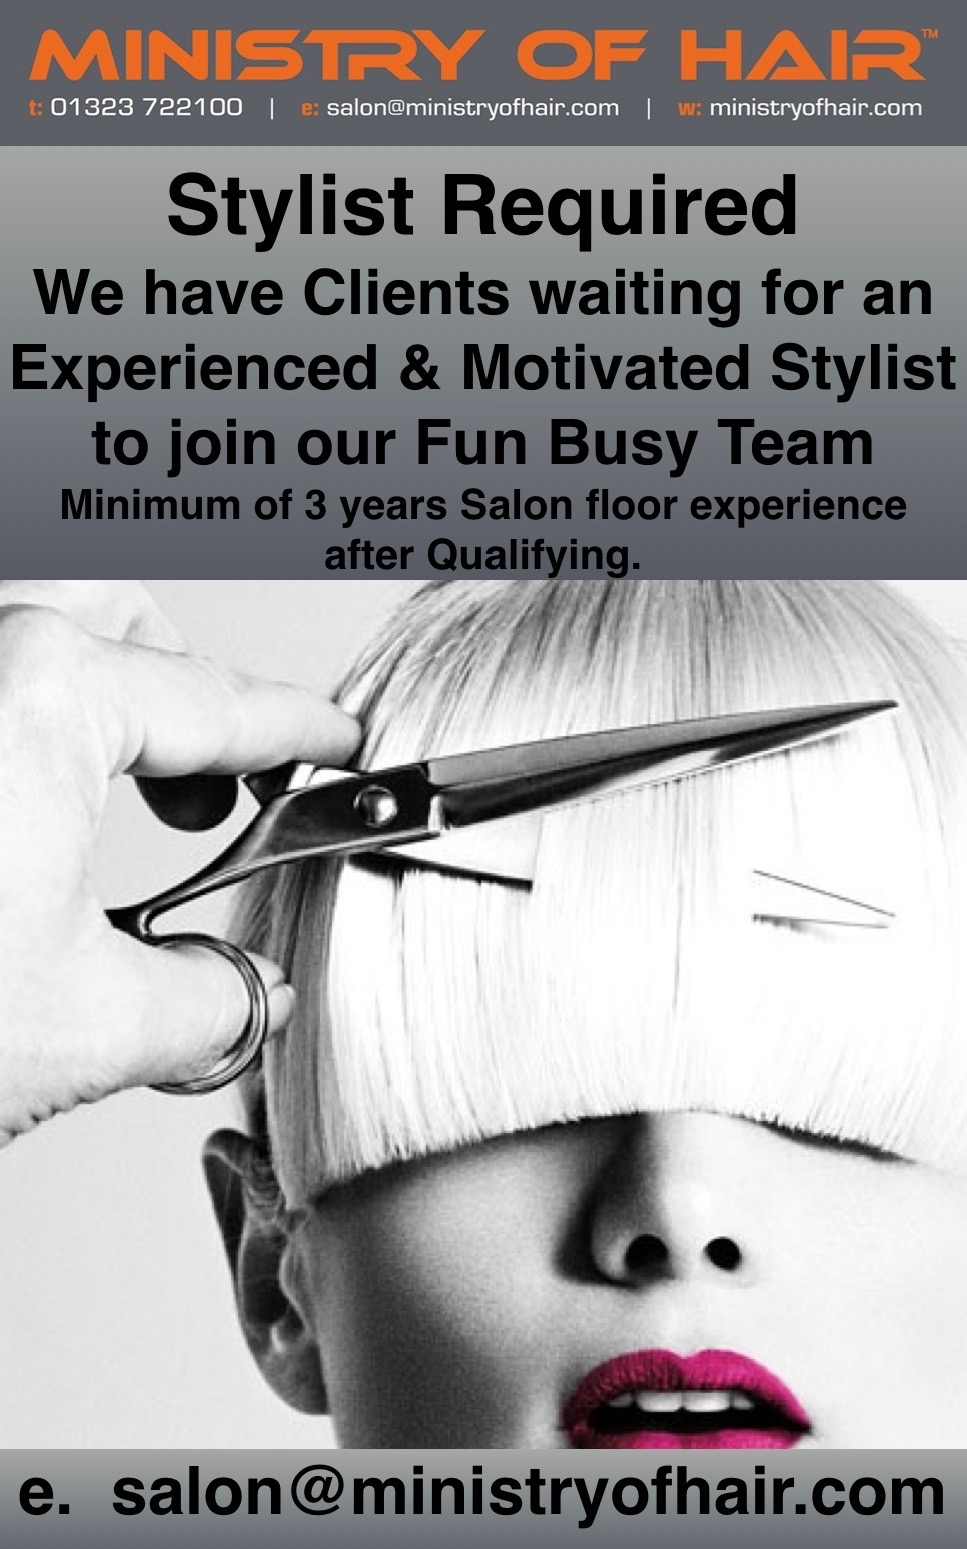 We are looking for a Full or Part time Salon Director to join our fun busy Team